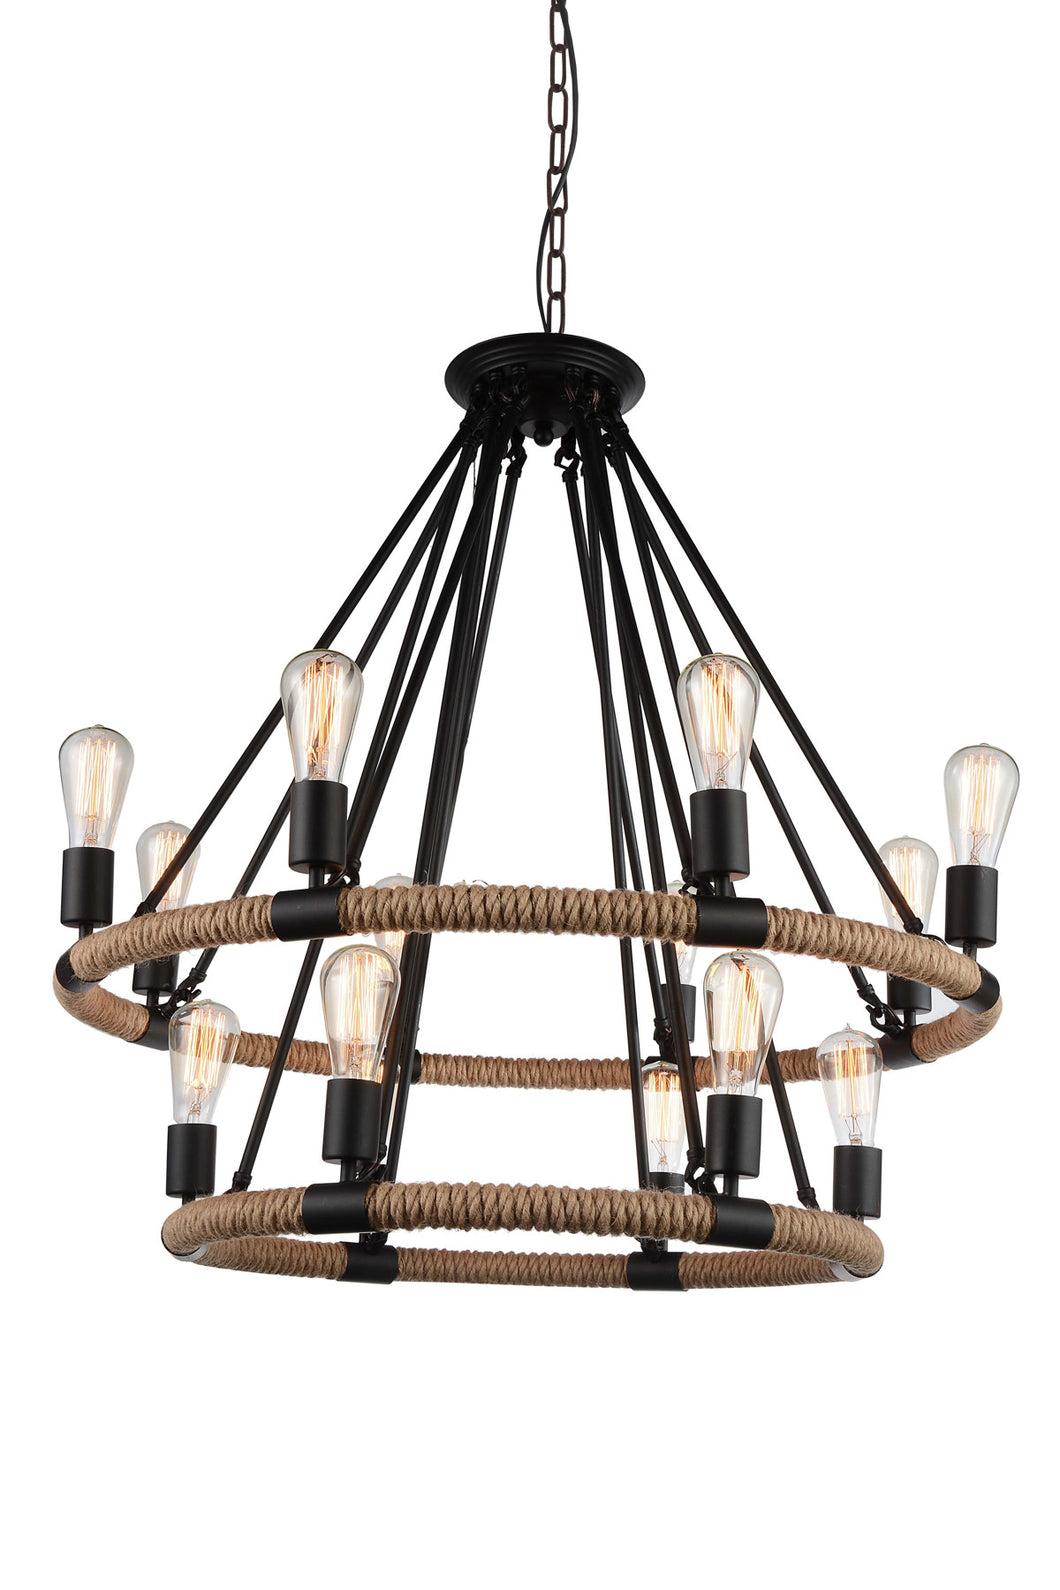 14 Light Up Chandelier with Black finish